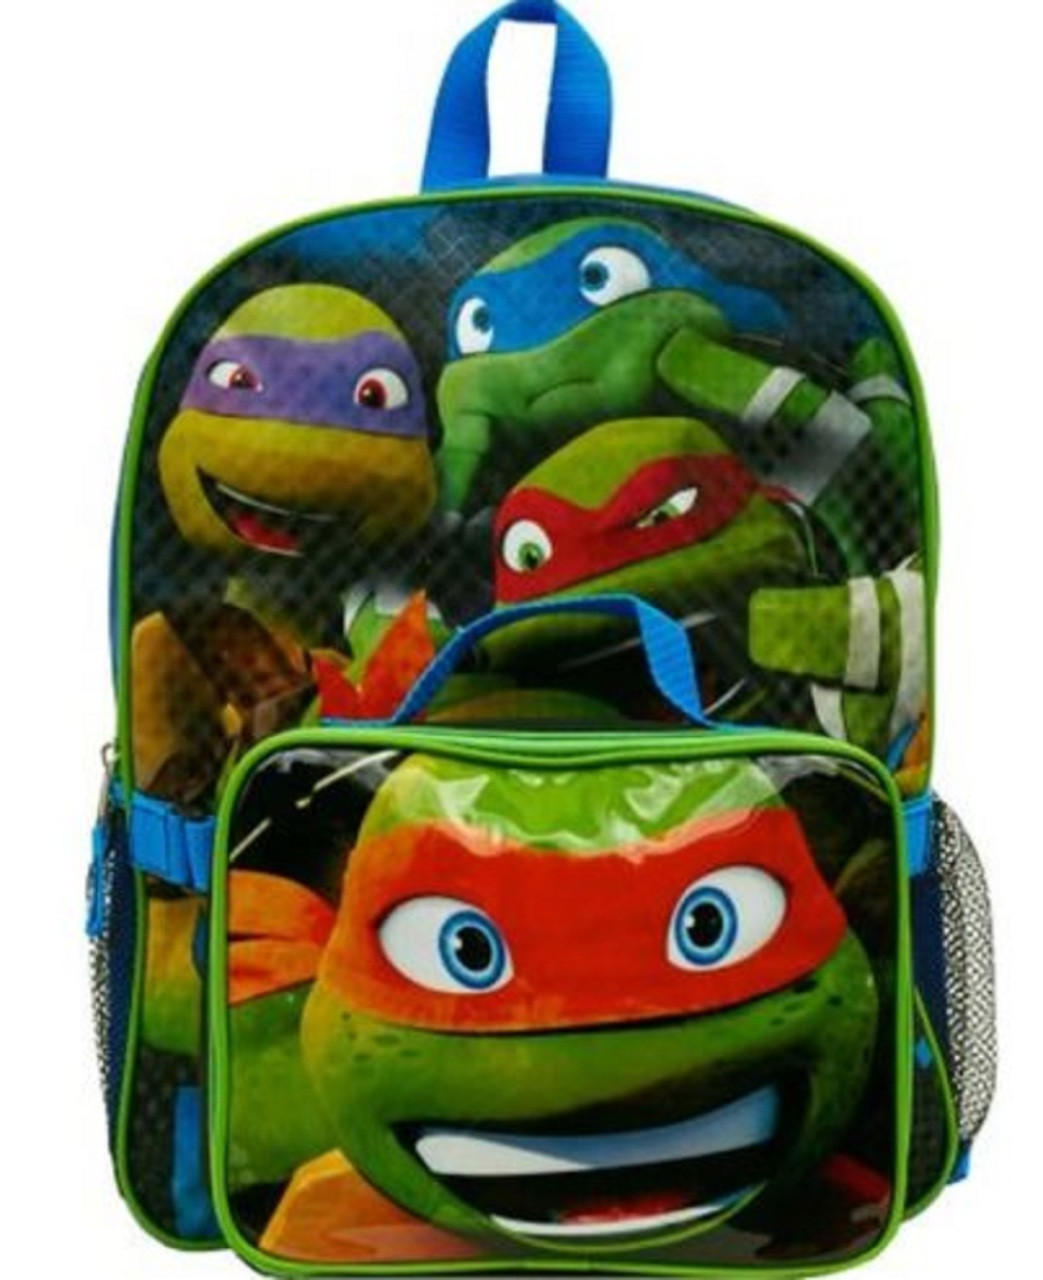 92a39076be Teenage Mutant Ninja Turtles 16 Inch Large Backpack With Lunch Box. Loading  zoom